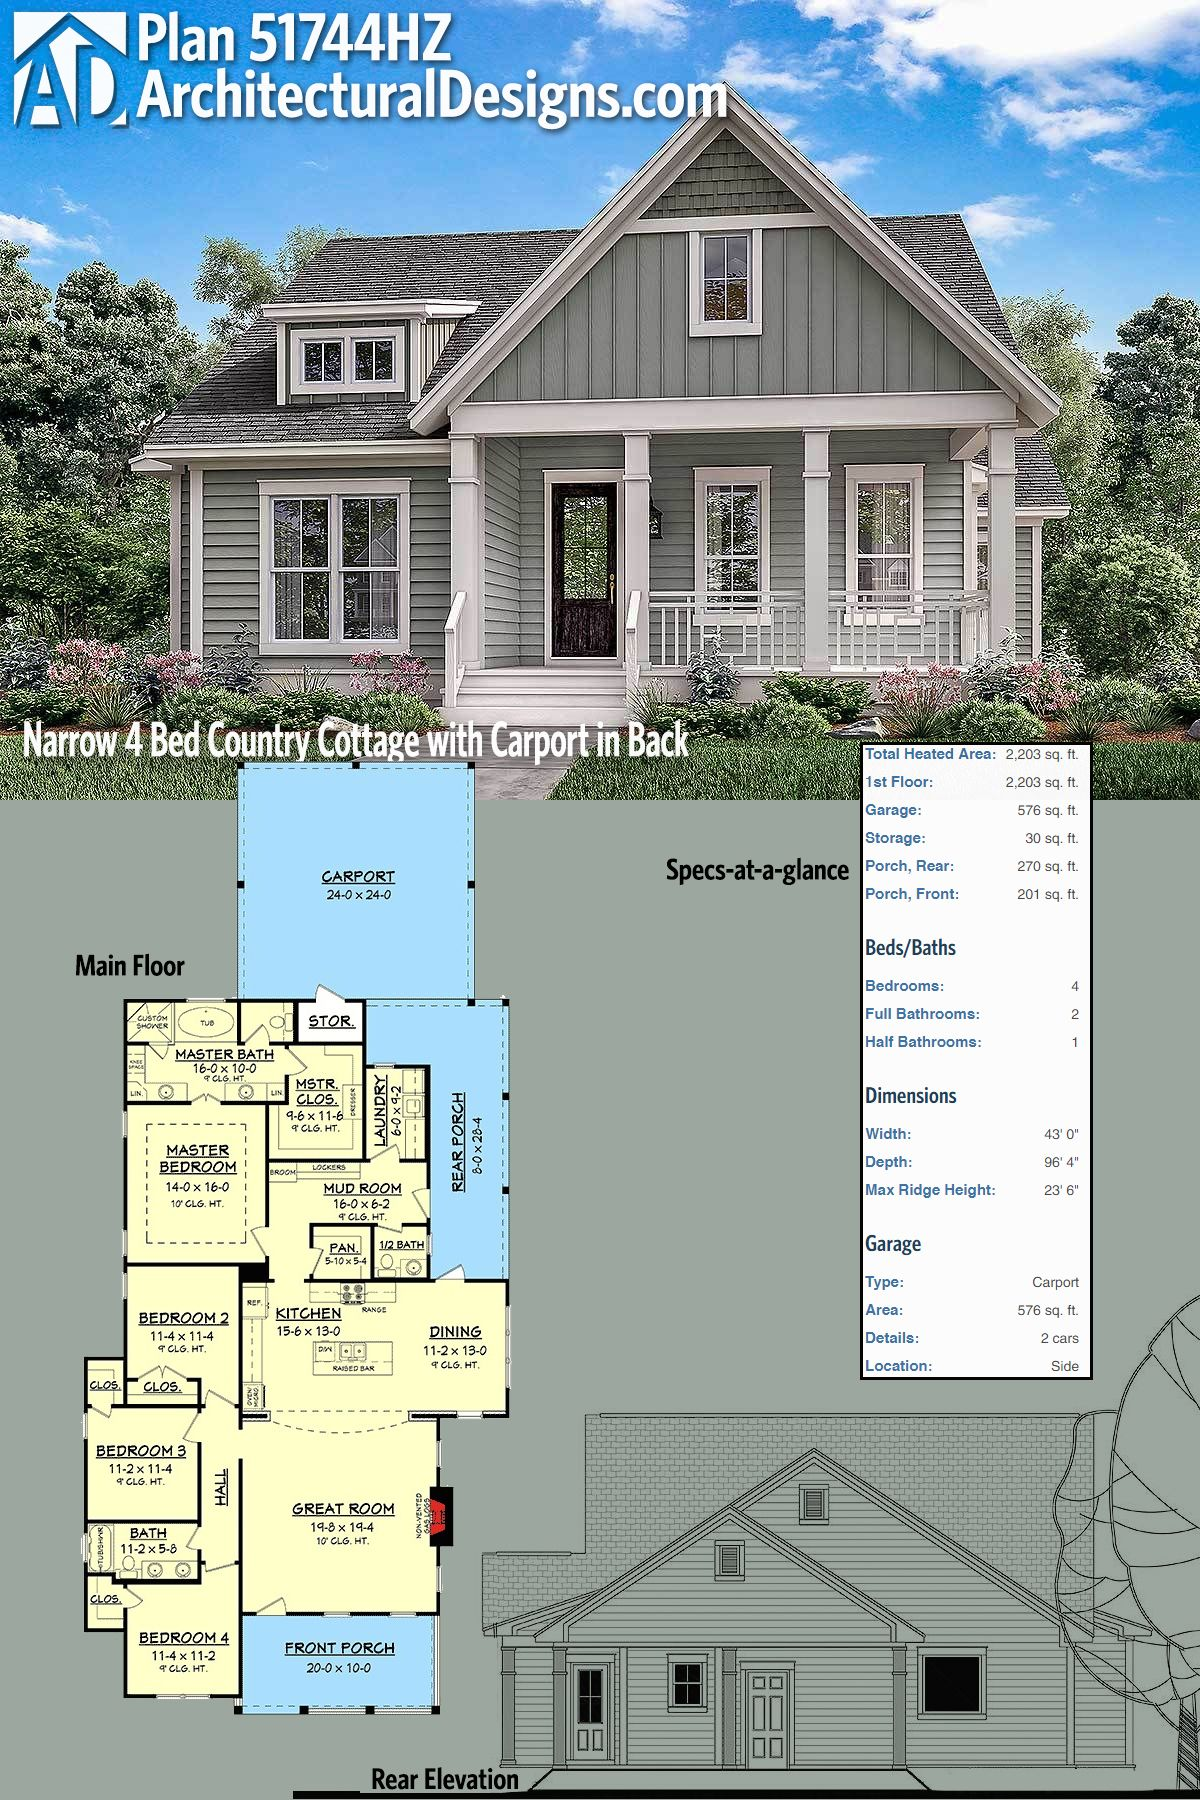 Plan 51744hz narrow 4 bed country cottage with carport in for House plans with carport